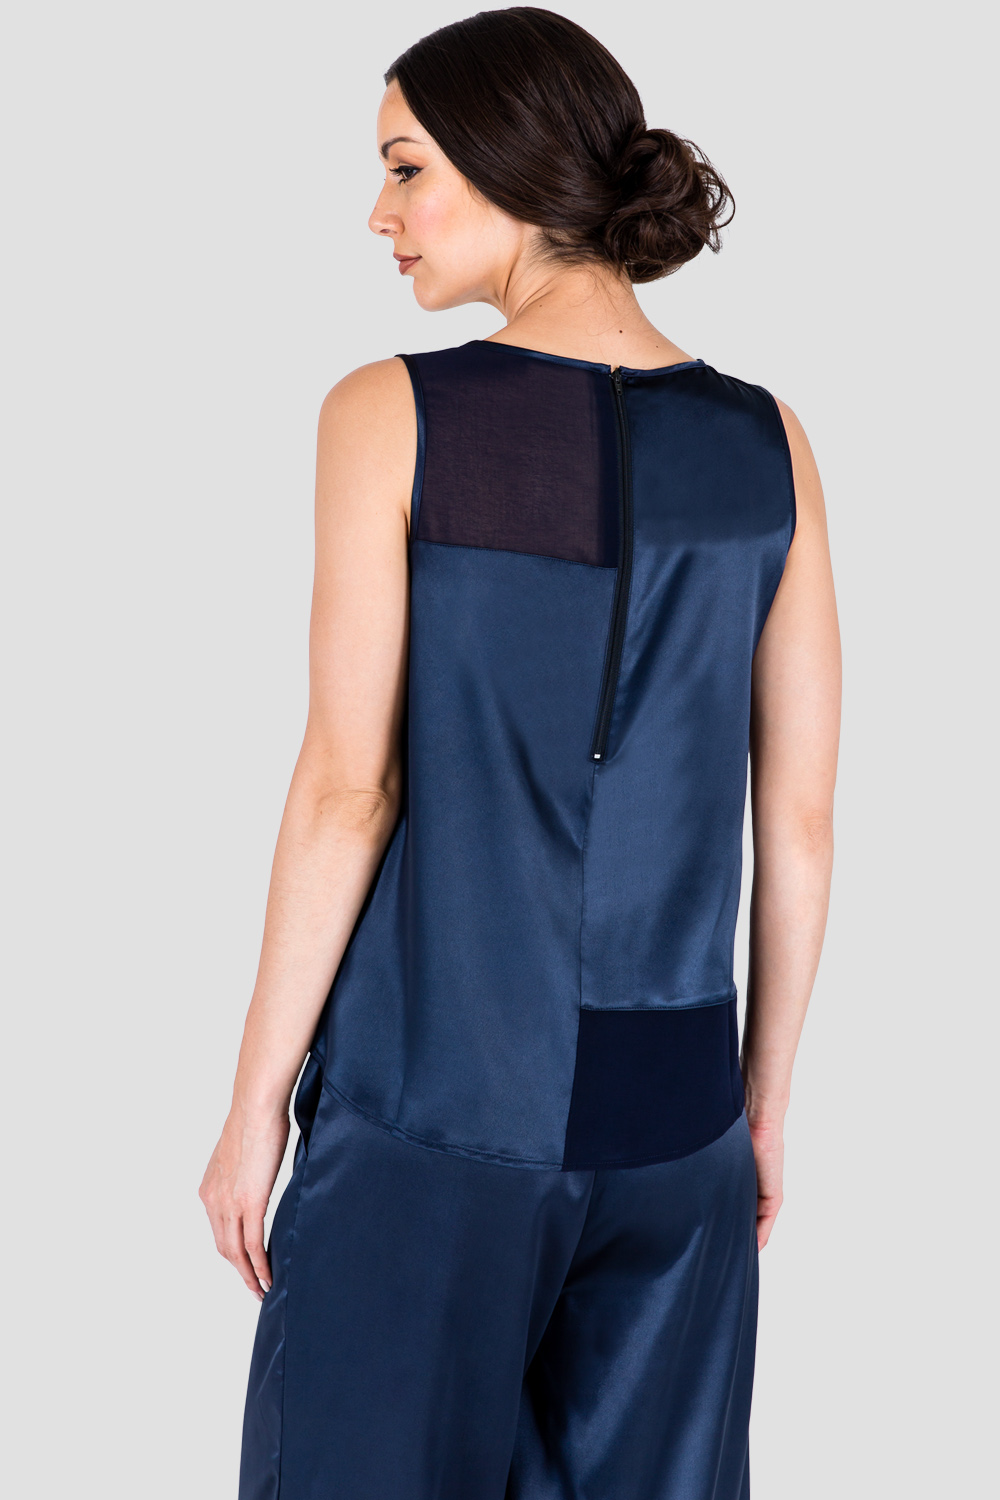 Women's Midnight Blue Sateen and Chiffon Sleeveless Top